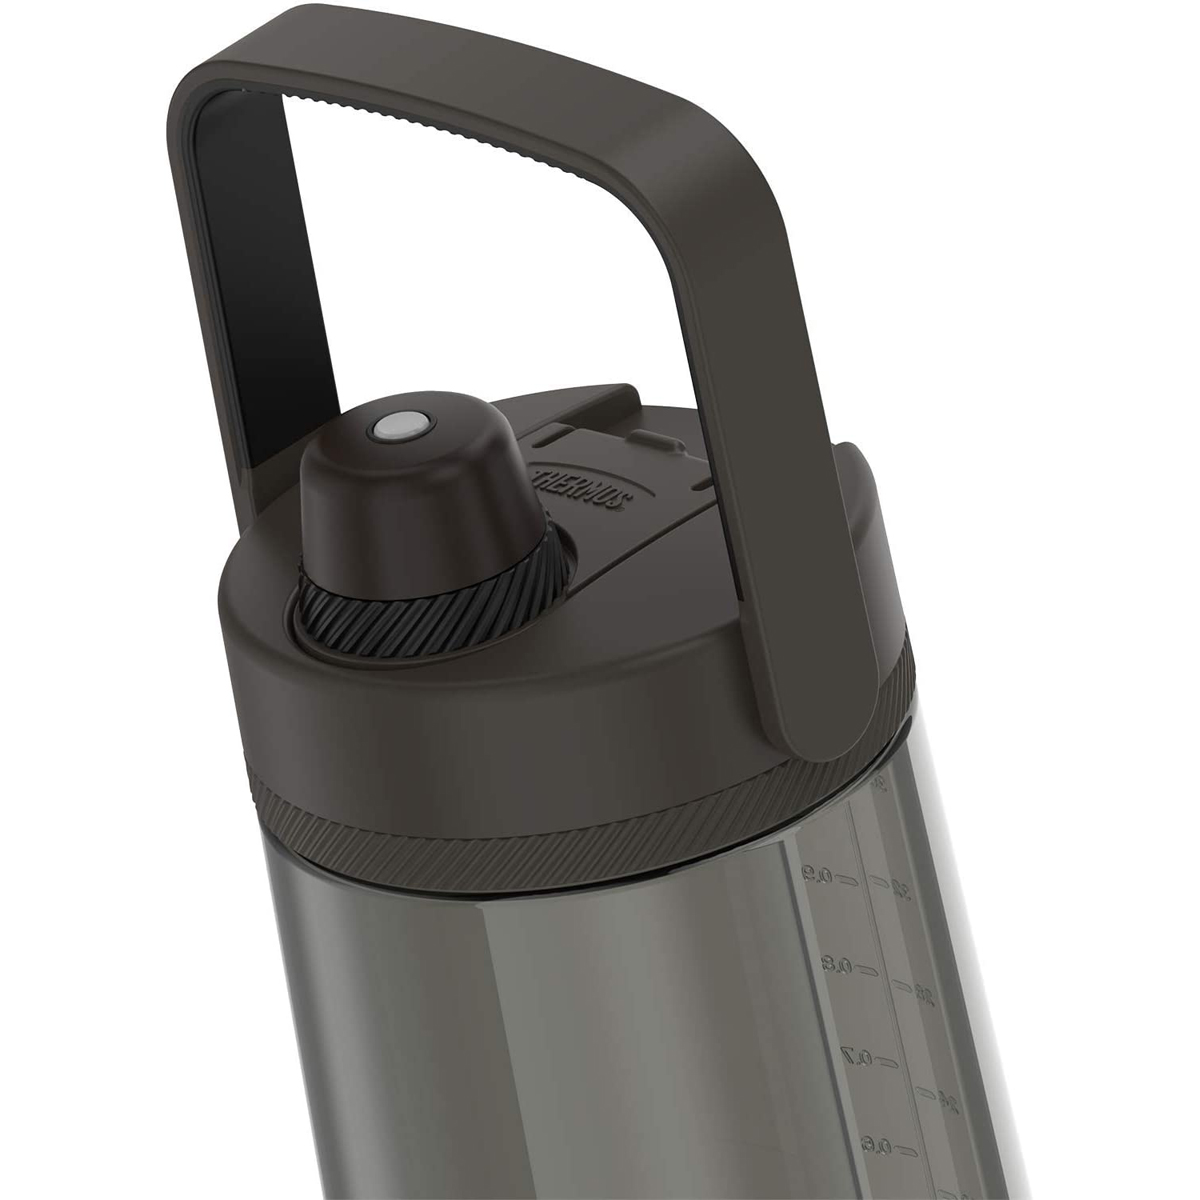 Thermos-40-oz-Guardian-Collection-Hard-Plastic-Hydration-Bottle-with-Spout thumbnail 4